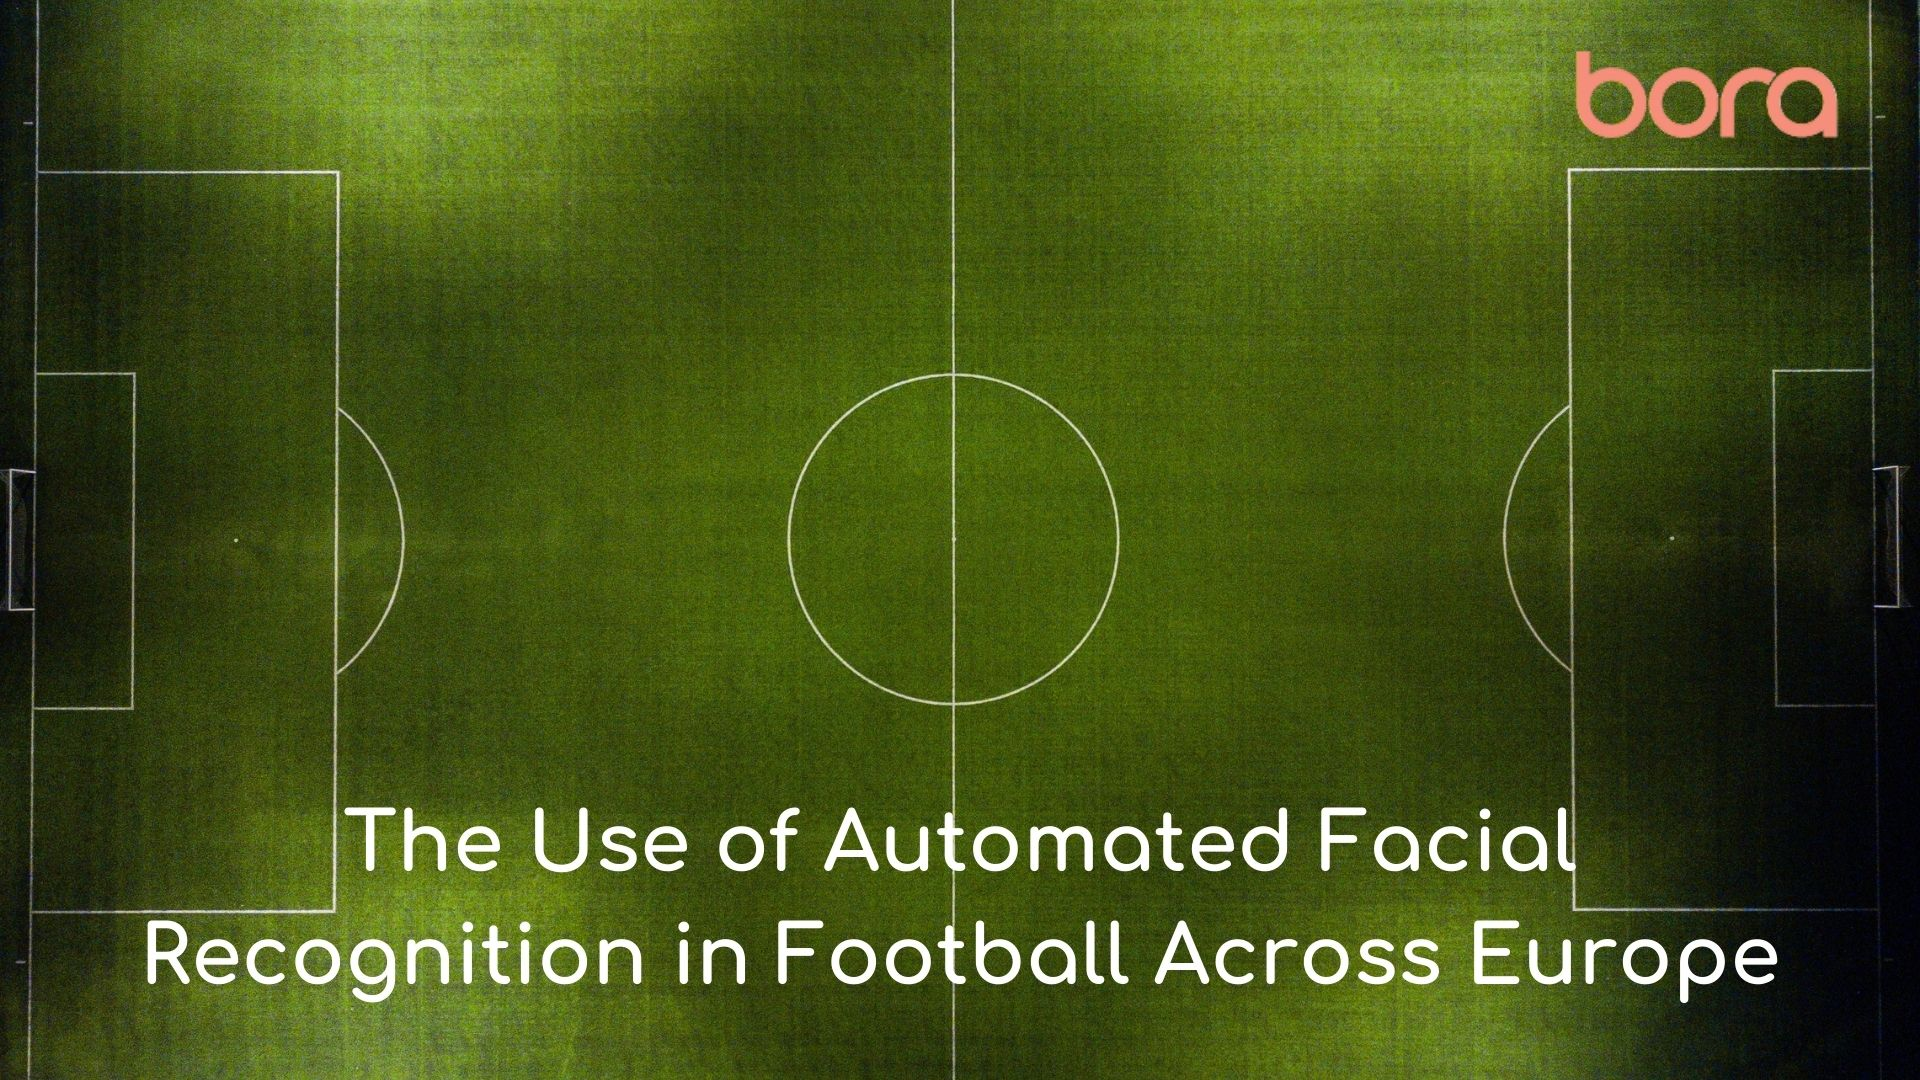 The Use of Automated Facial Recognition in Football Across Europe